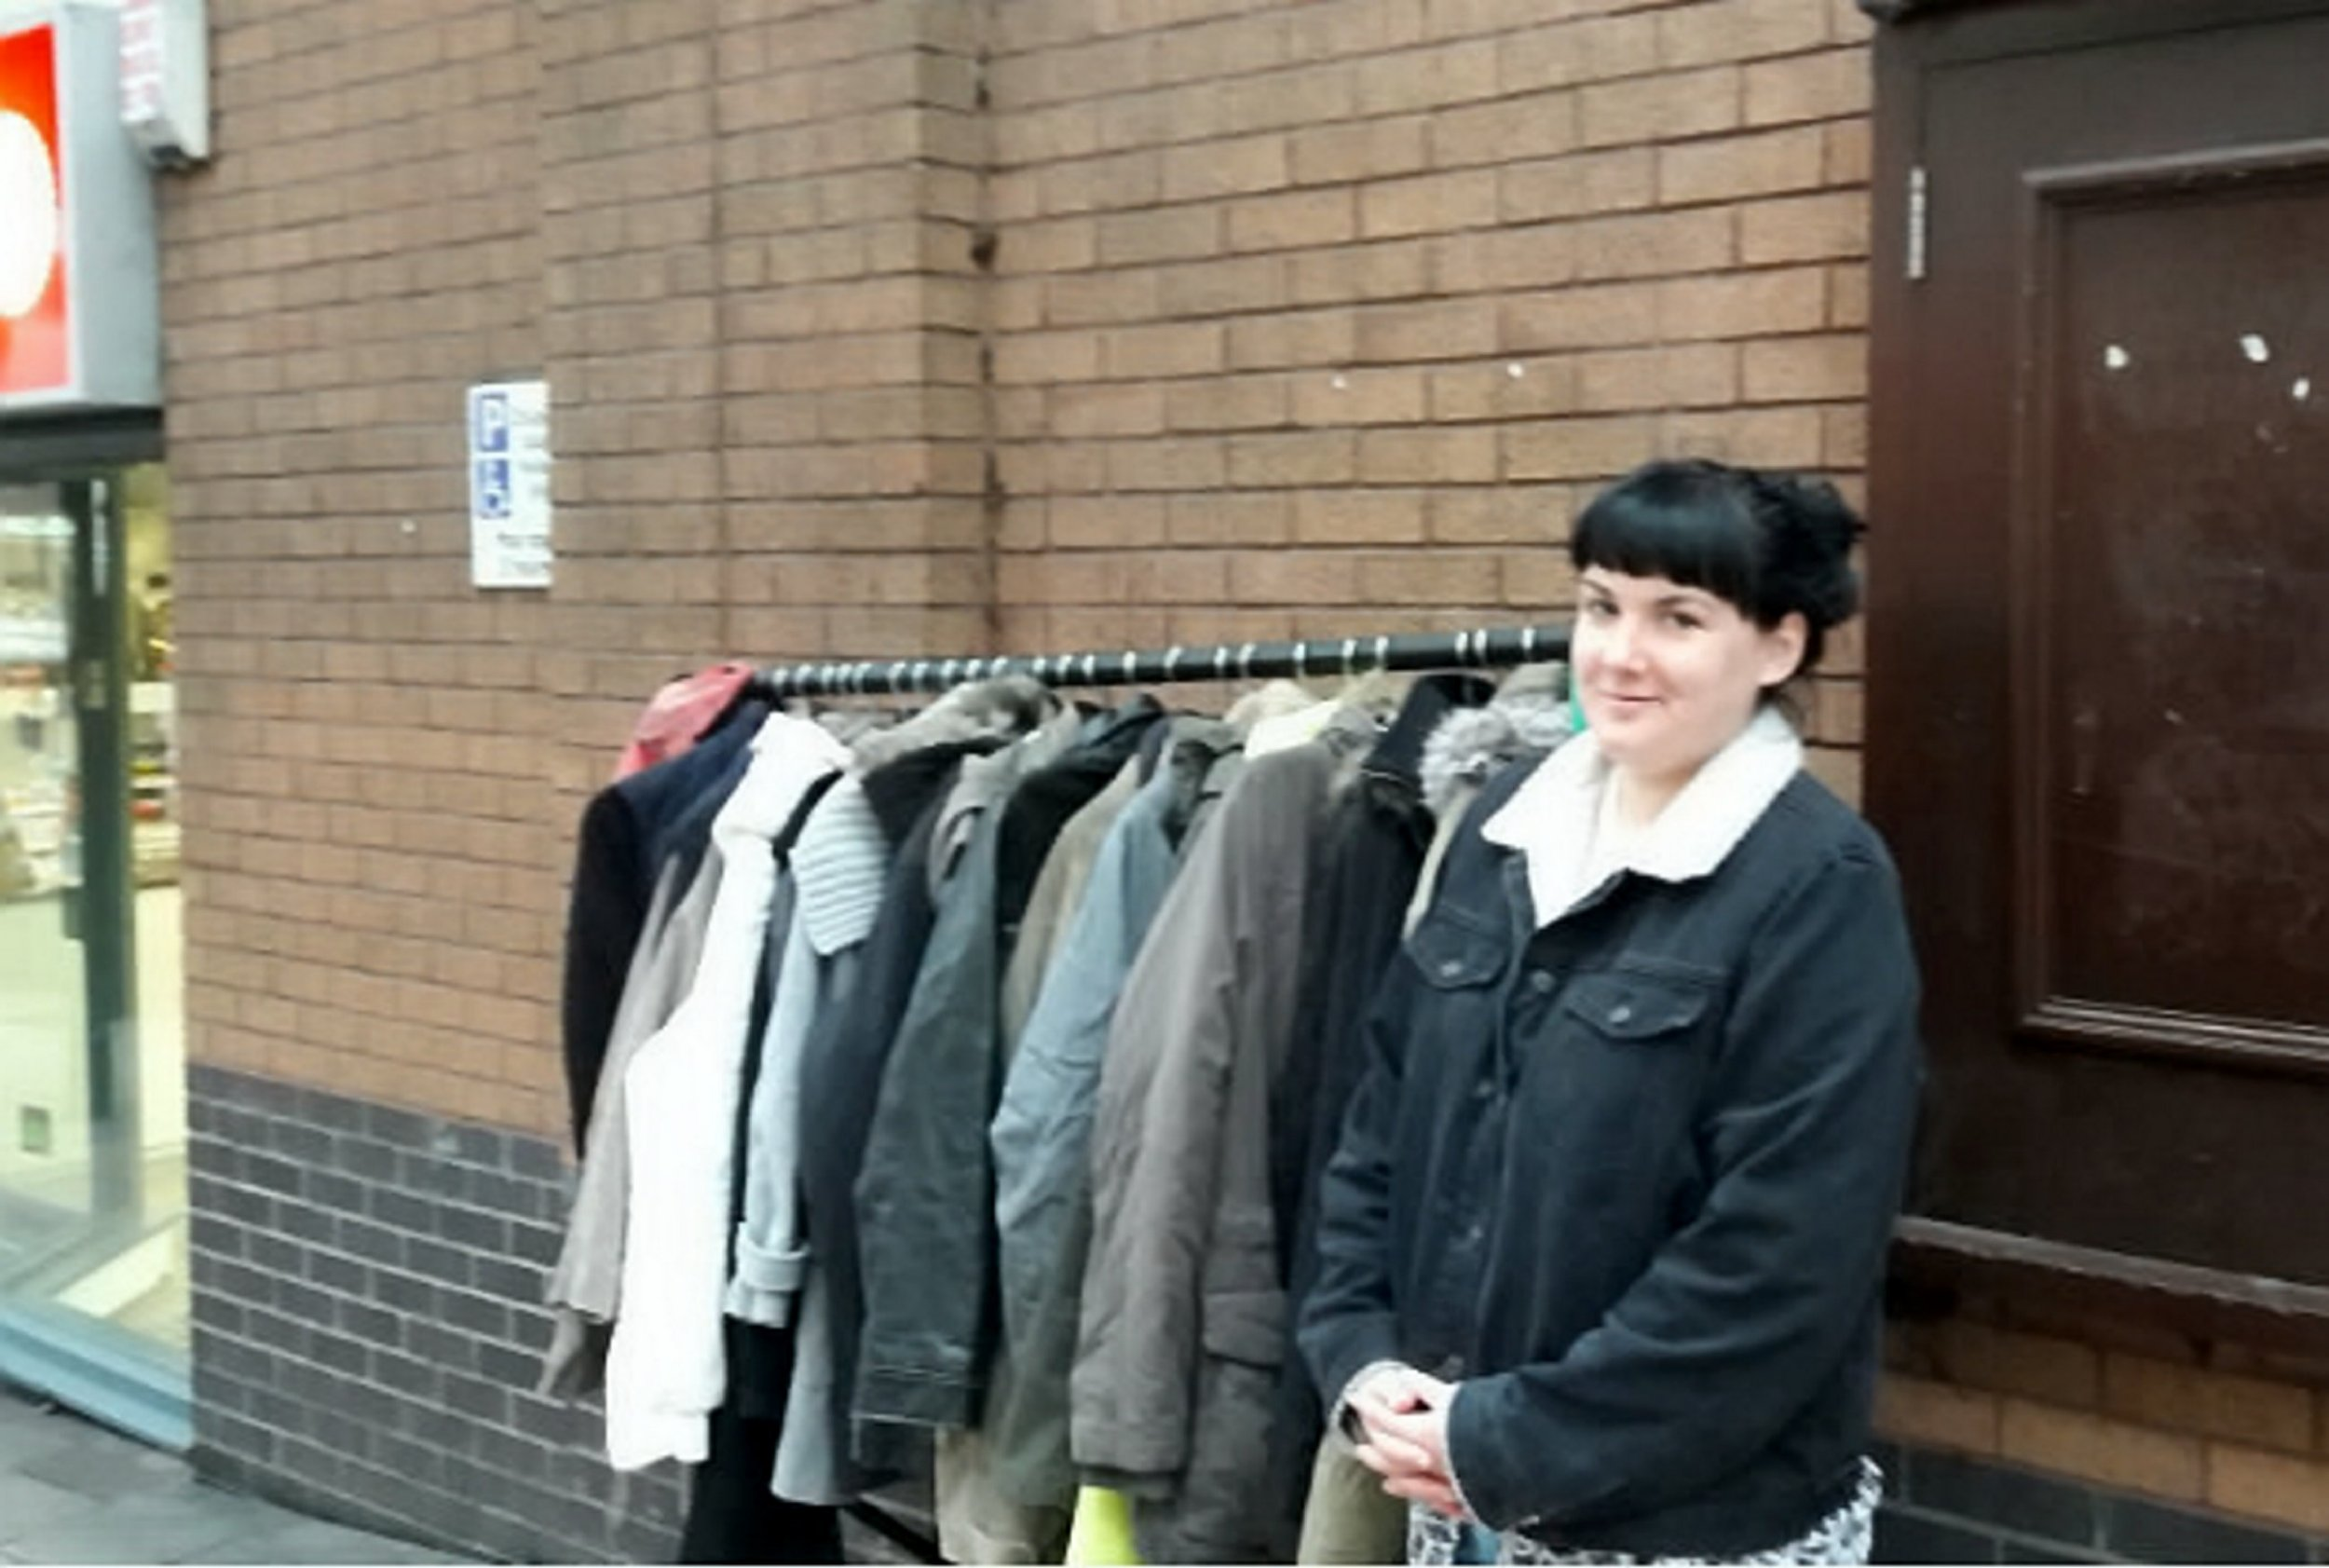 """Sarah Jade organised the charity installation. A clothes rail filled with coats for the homeless has been stolen - within 24 hours of being left in the street. See SWNS story SWRAIL; Volunteers set up the free-standing frame in central Bristol on Sunday afternoon in the hope of providing warmth for rough sleepers. But by Monday morning the entire rail and 20 coats had been stolen. Sarah Jade organised the charity installation by appealing on Facebook for people to donate their unwanted outerwear. """"I'm really sad this has happened,"""" she said. """"It wasn't in the way or taking up a lot of room, and all we wanted to do was show people that we care. """"The Facebook response was brilliant. We just wanted to help where we could."""""""